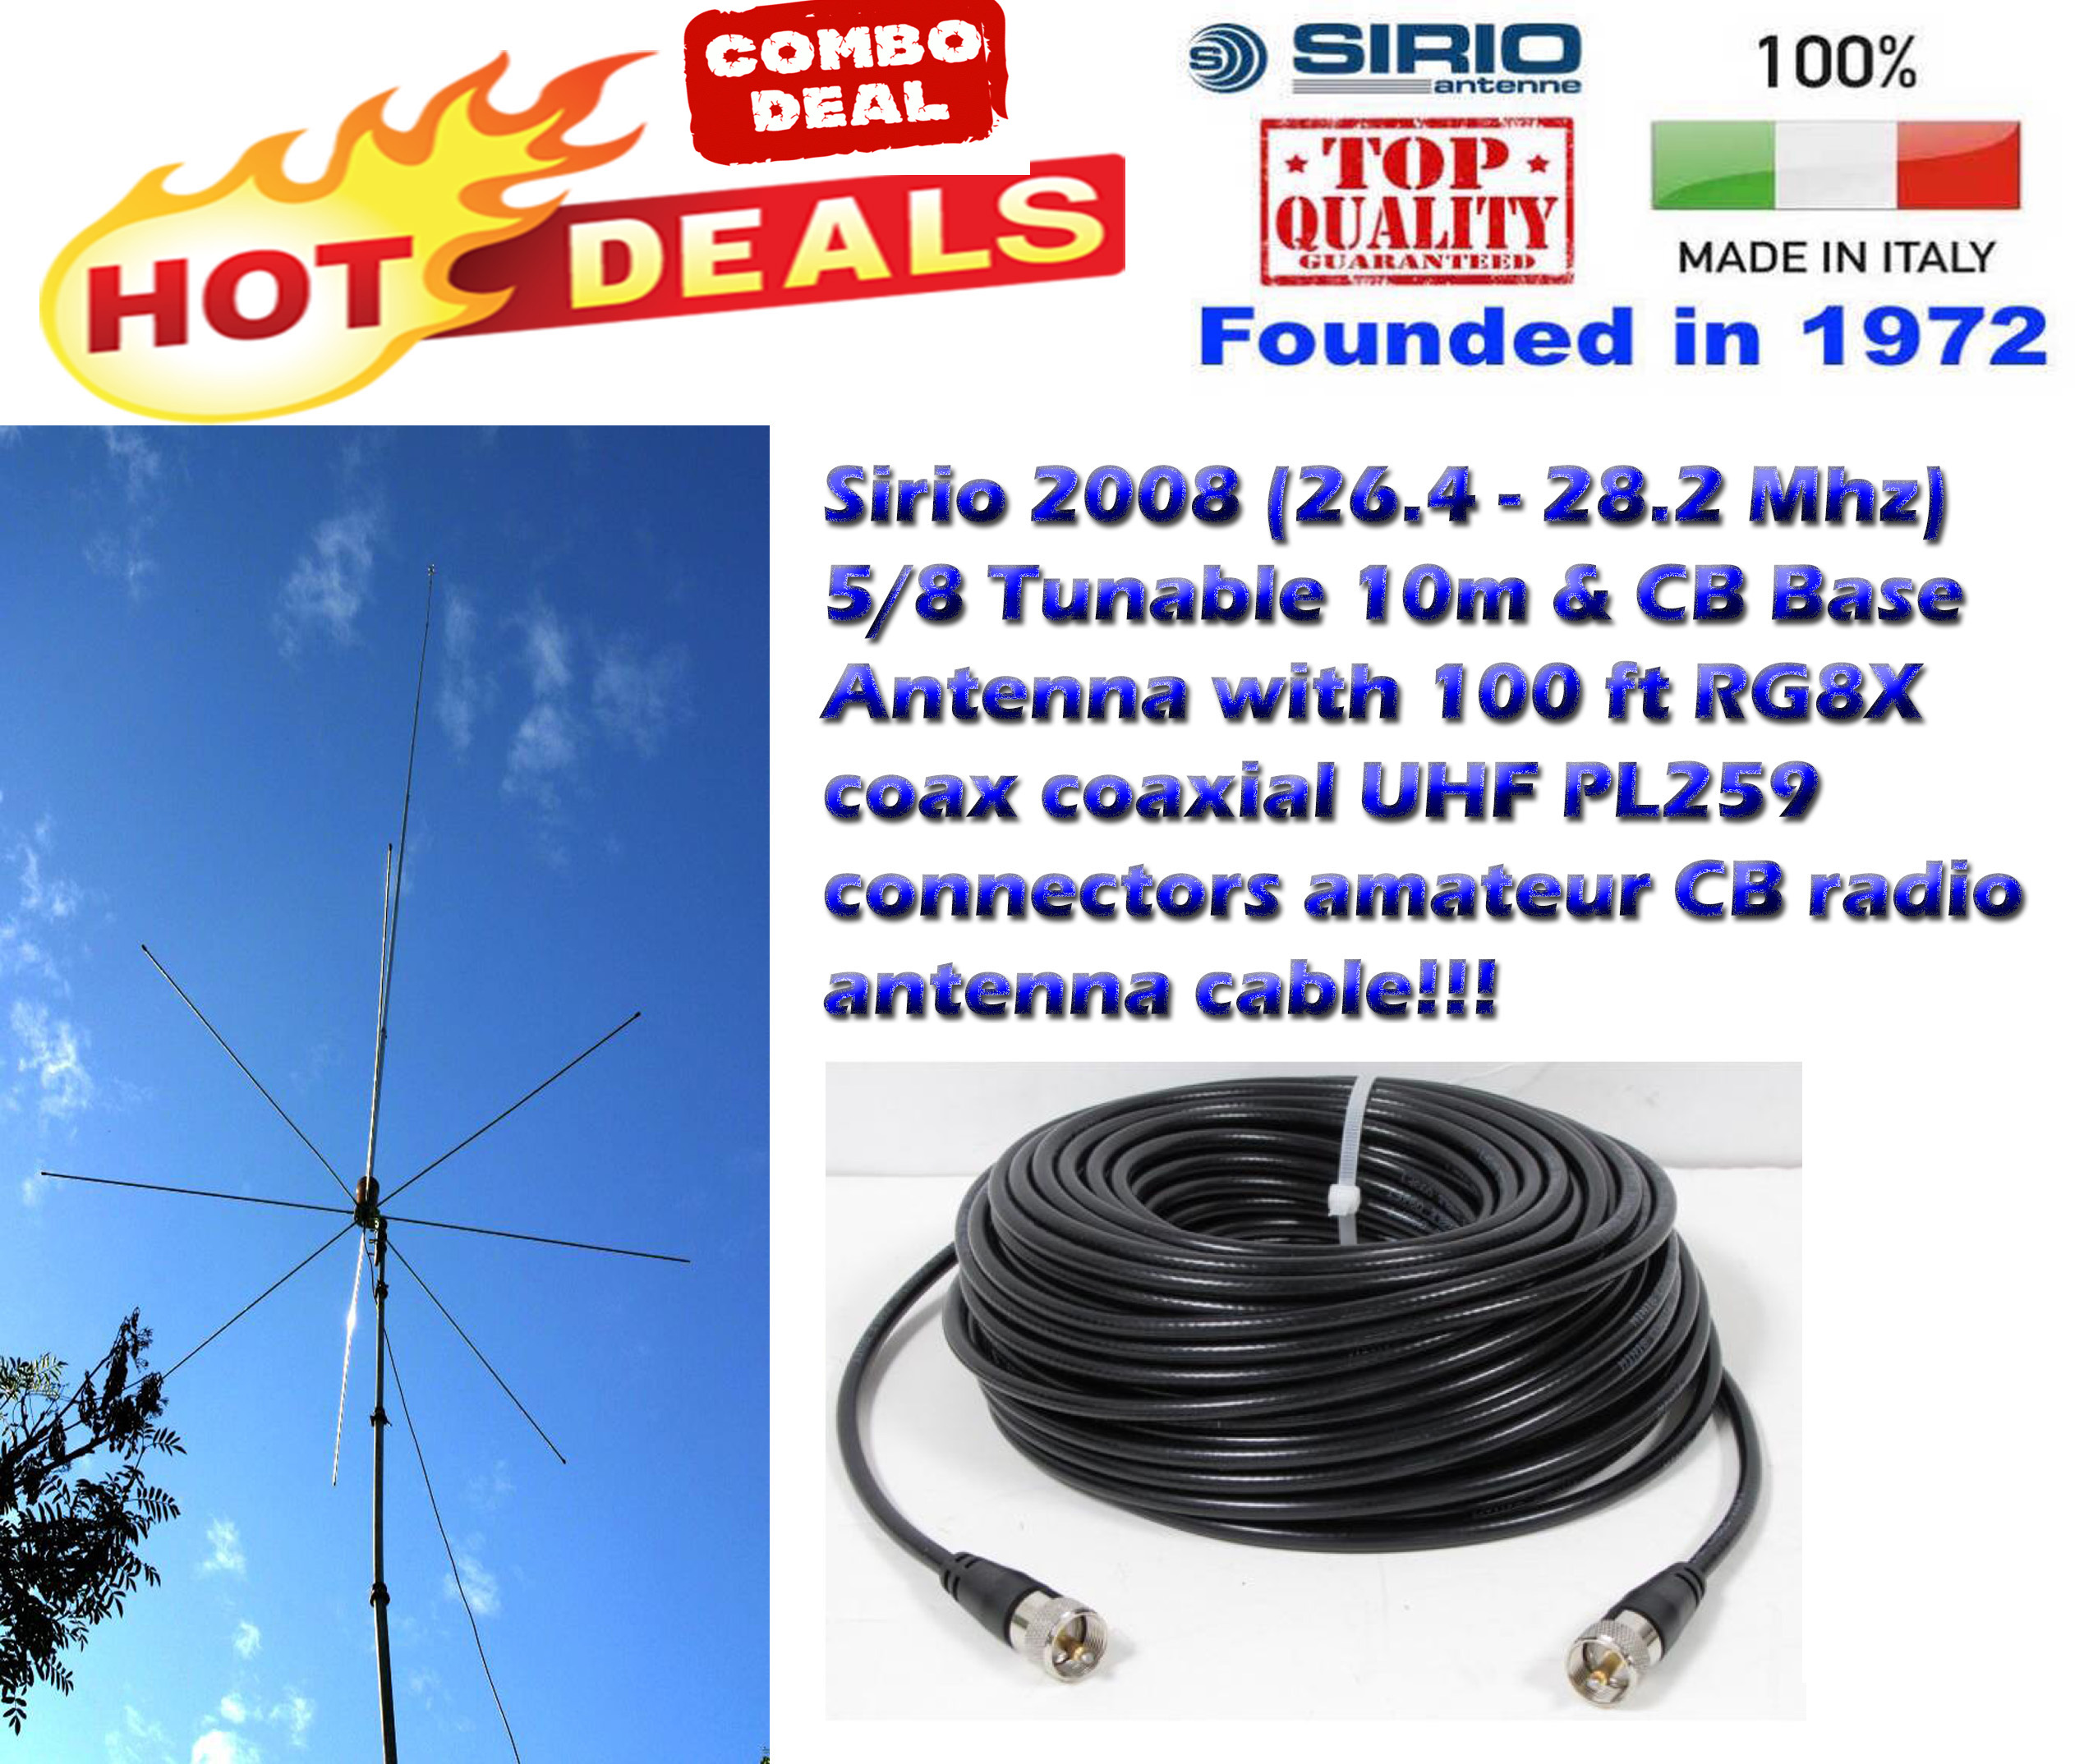 Sirio 2008 5/8 Tunable 10m & CB Base Antenna with 100 Ft Coax